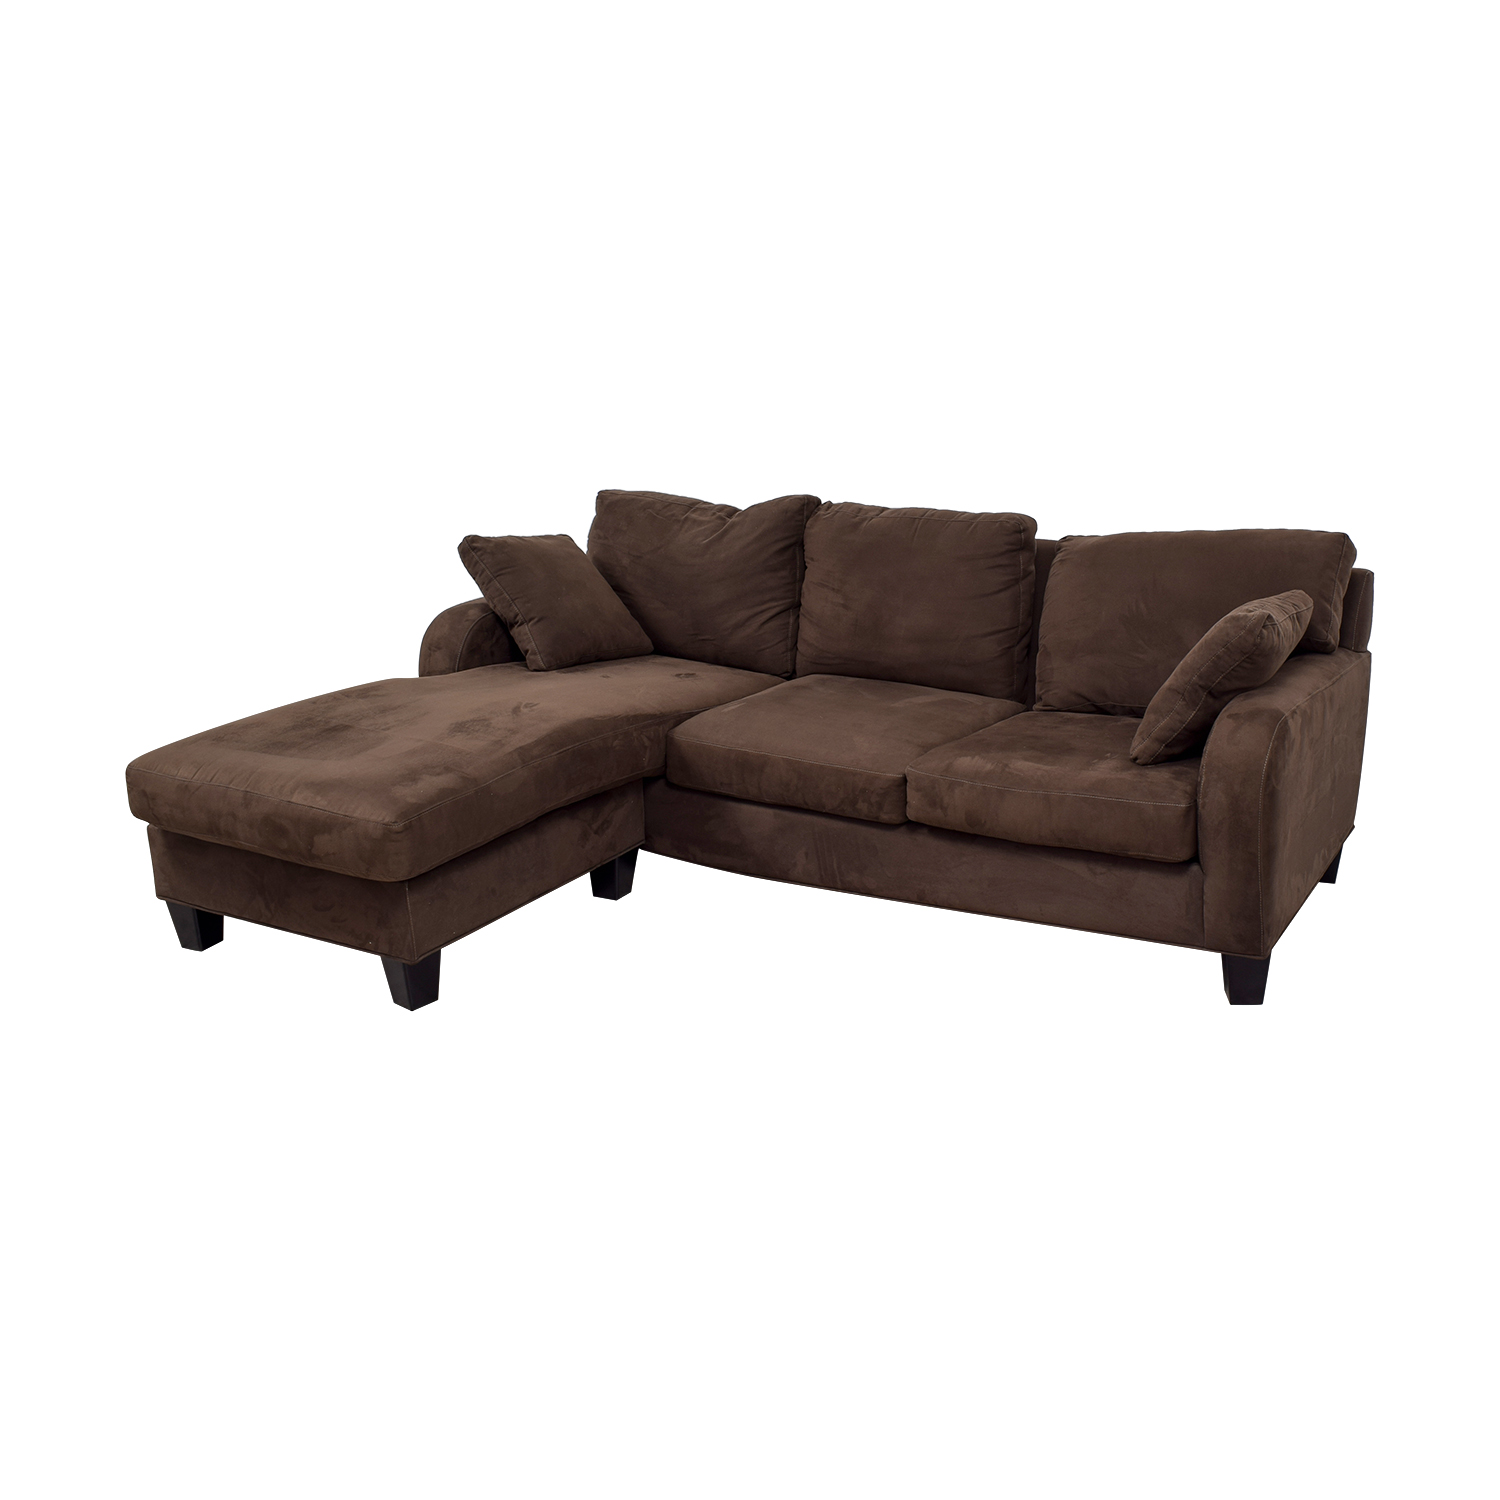 74% OFF - Cindy Crawford Cindy Crawford Brown Chaise ...